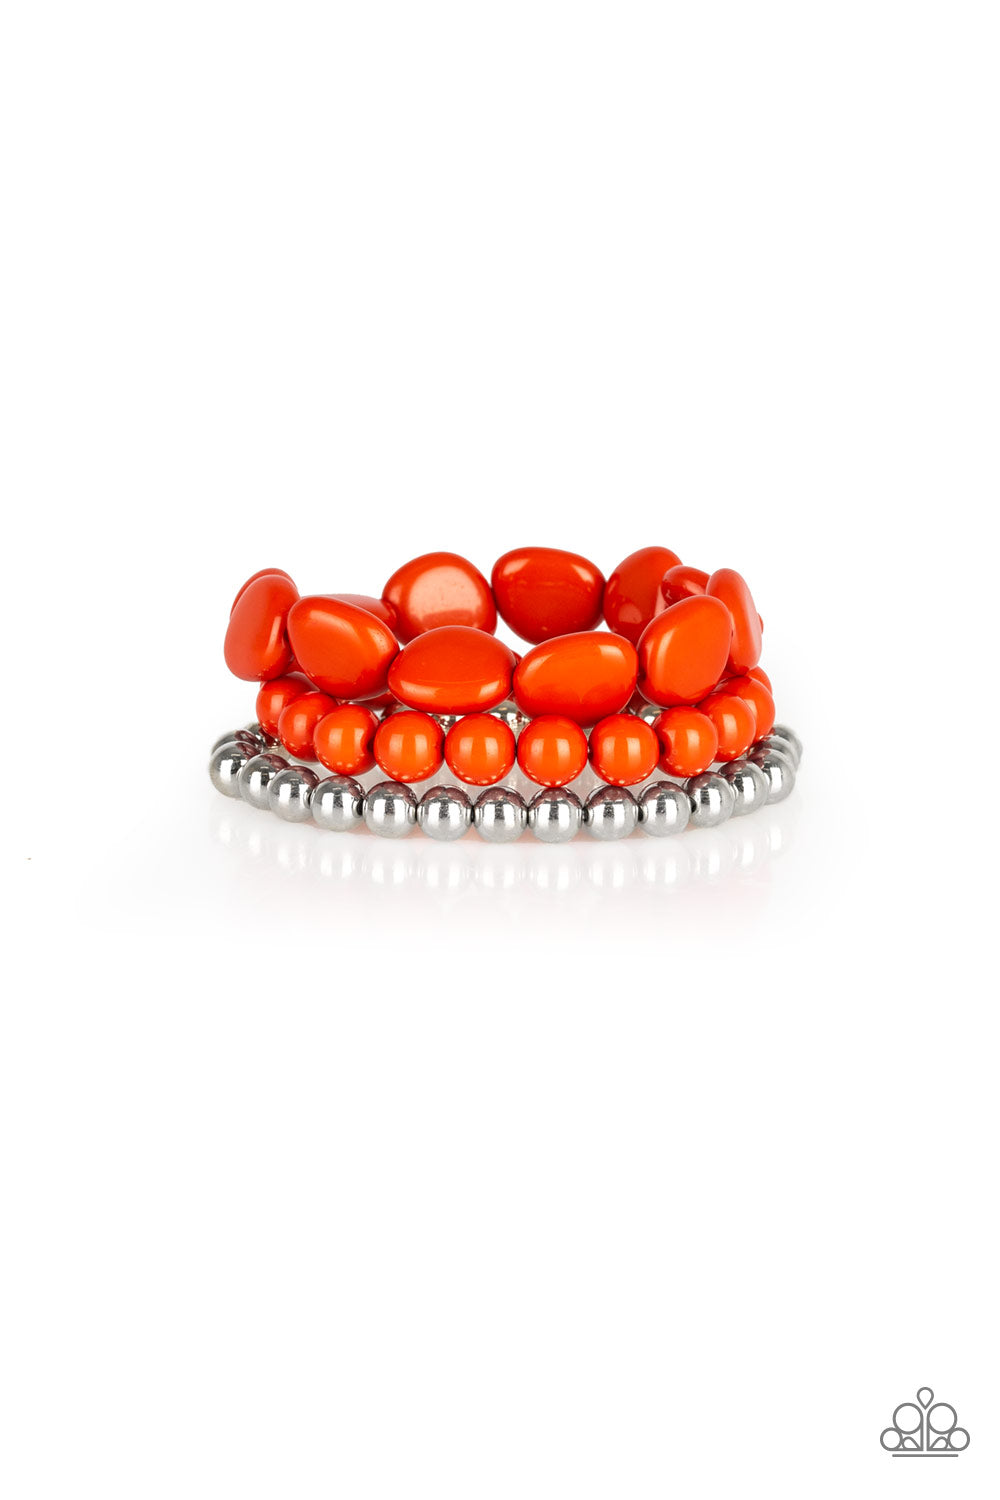 Color Venture - orange beaded stretch bracelet - The Paparazzi Fox